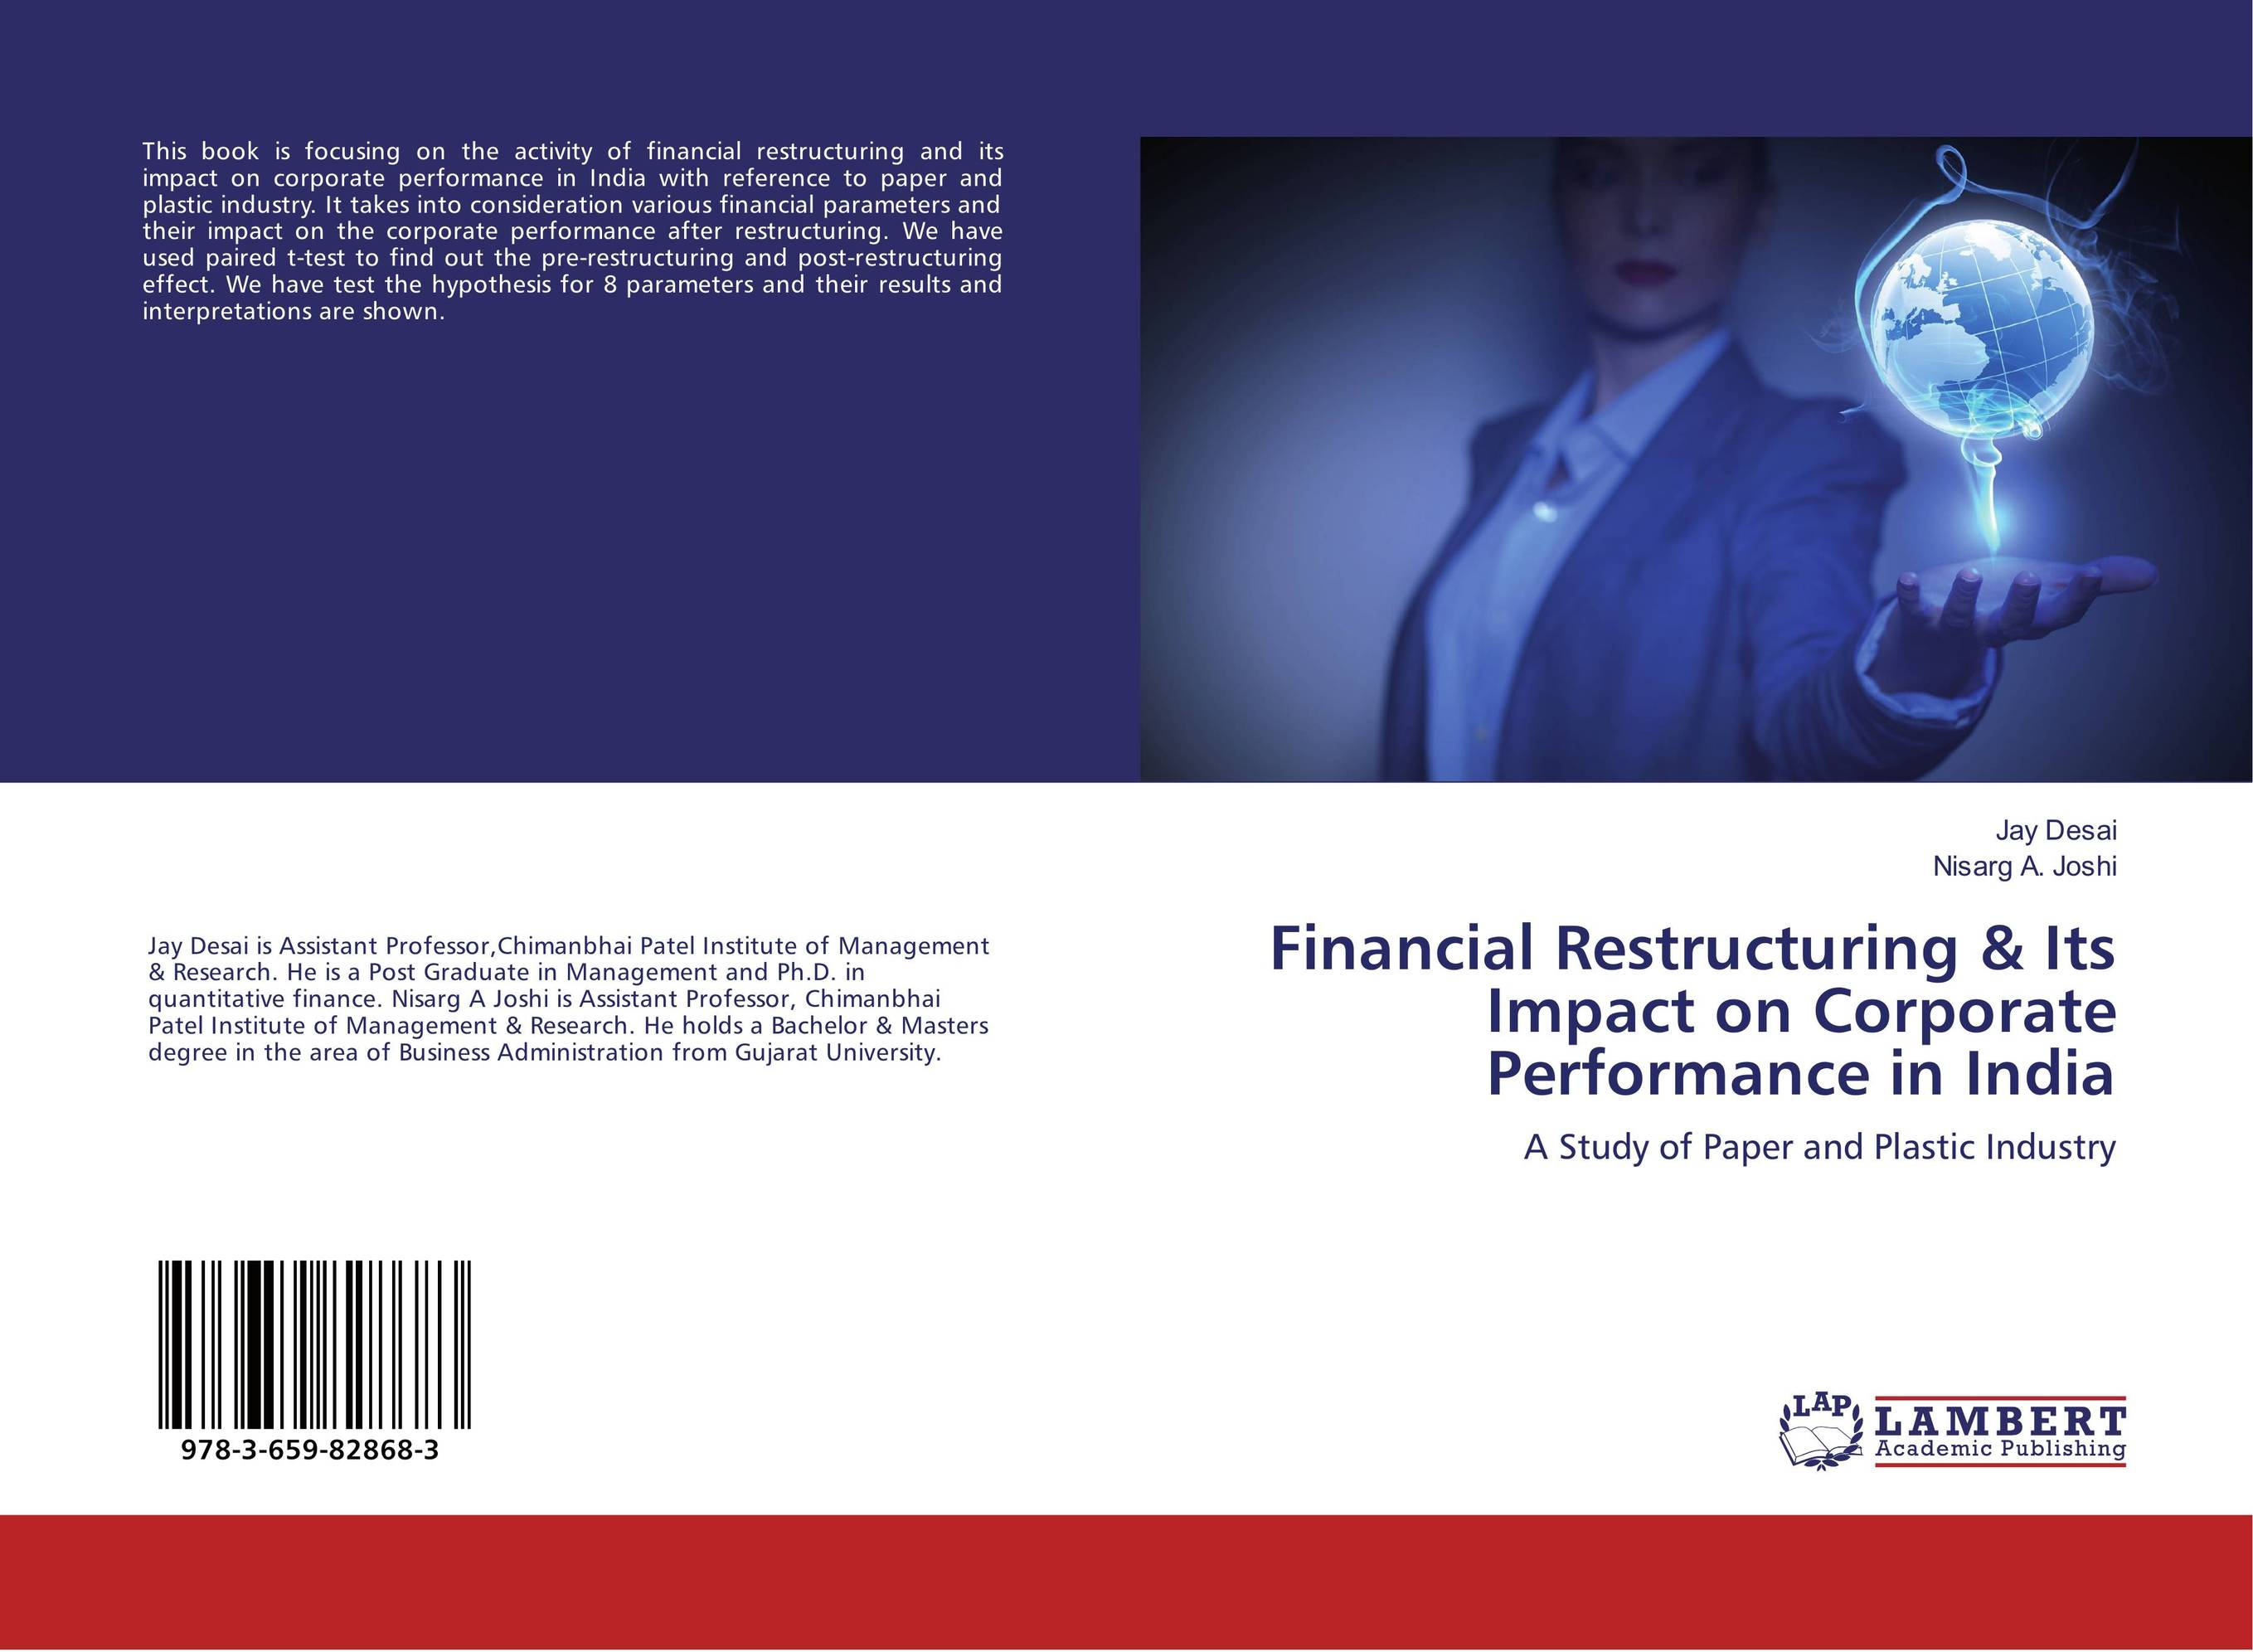 Financial Restructuring & Its Impact on Corporate Performance in India corporate governance and firm value